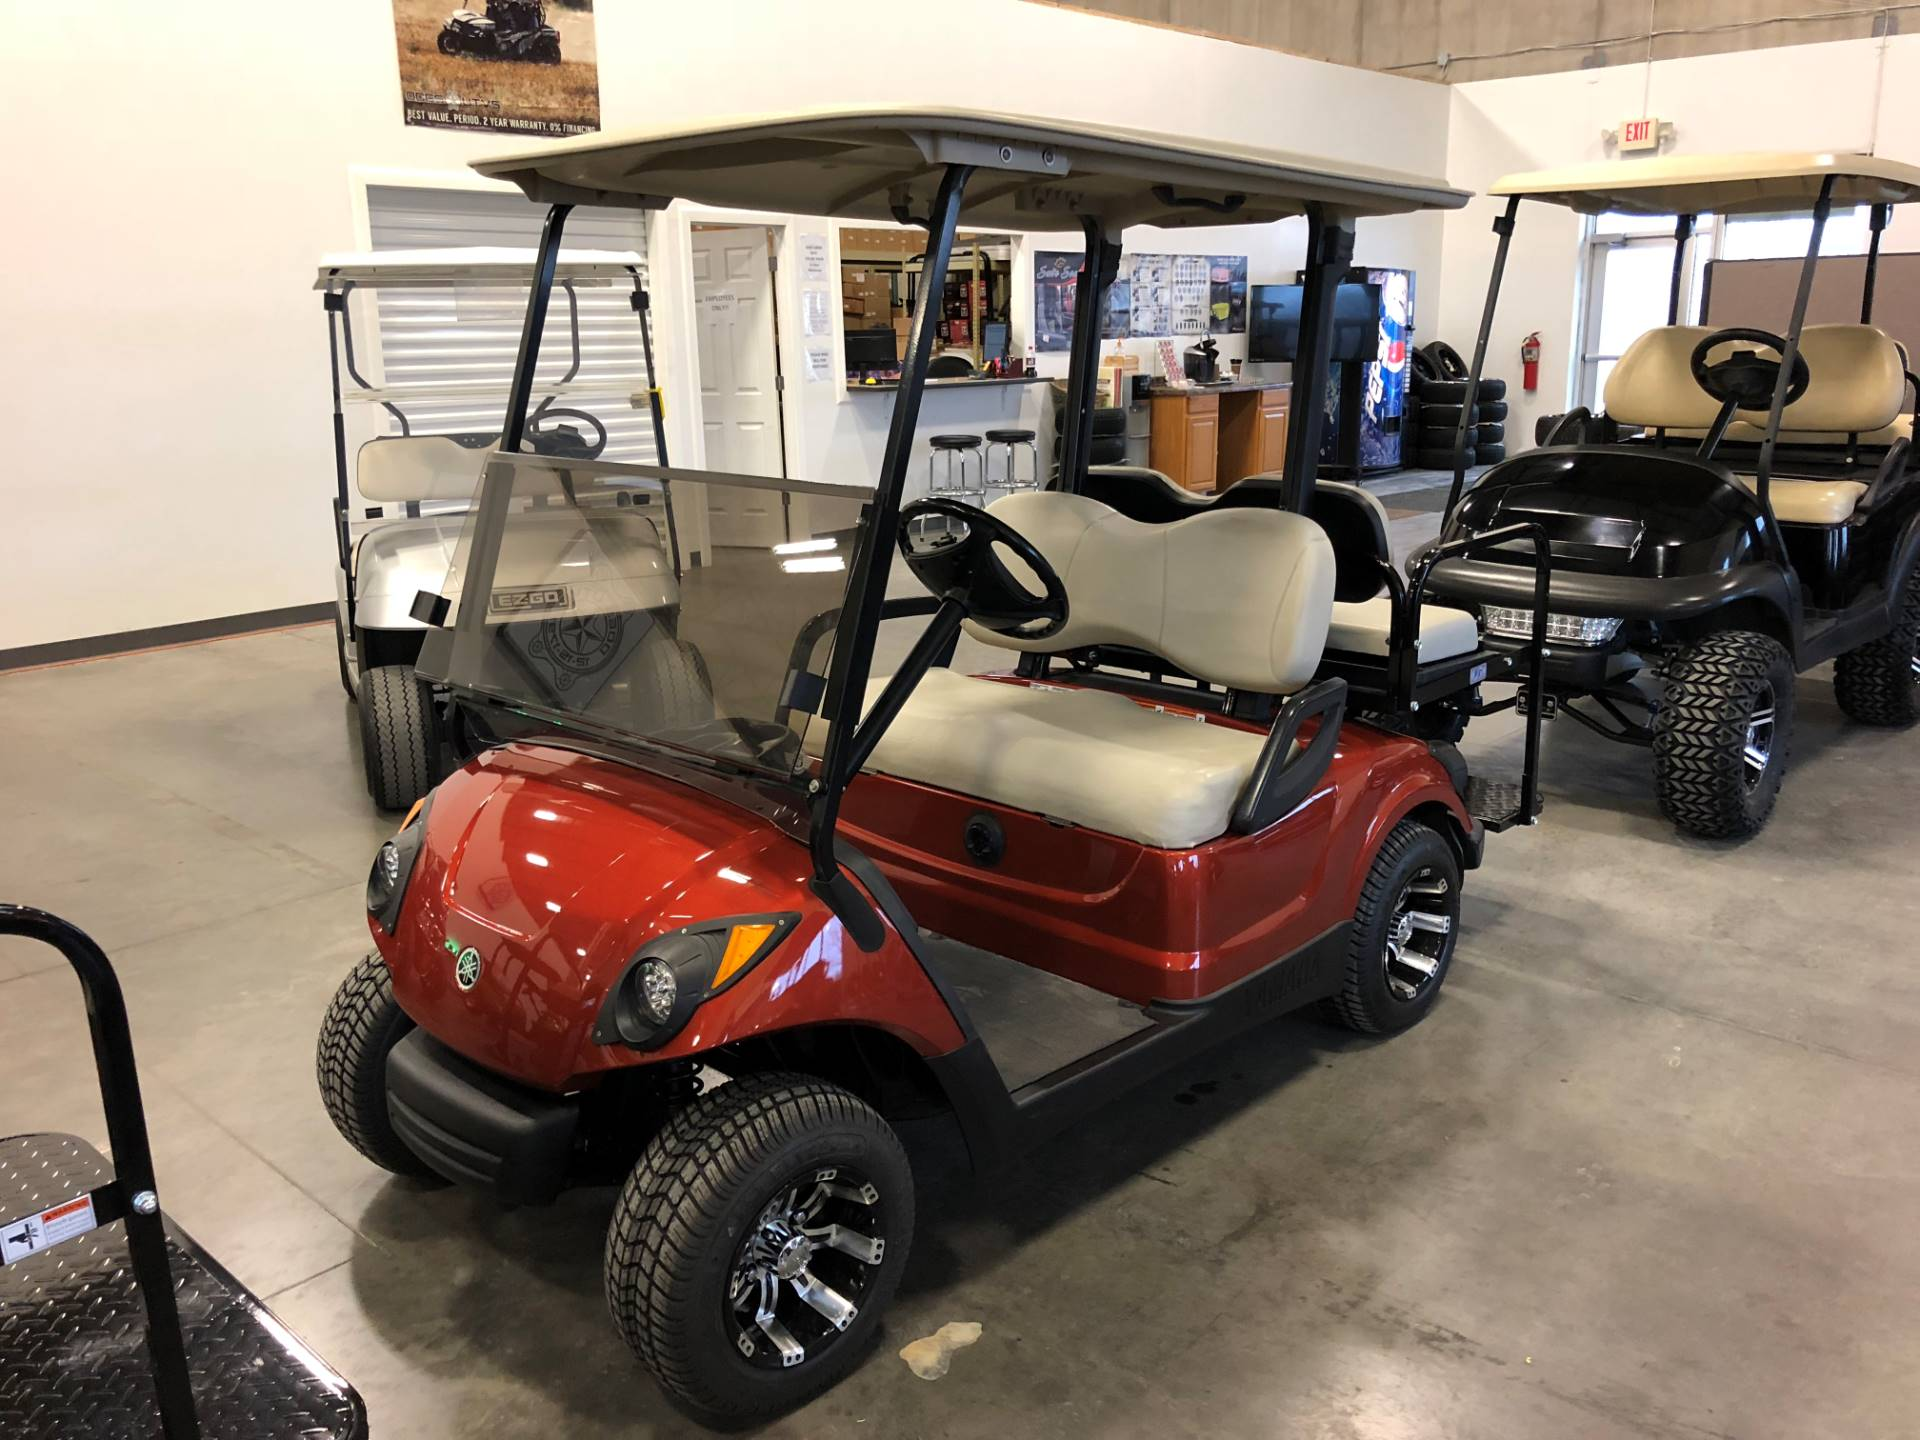 2012 Yamaha Drive Golf Carts Otsego Minnesota 205223 on gasoline carts, used carts, ezgo carts, yamaha side by side, custom lifted carts, yamaha passenger carts, yamaha electric carts, gas powered carts, yamaha gas carts, yamaha trailers, yamaha utility,